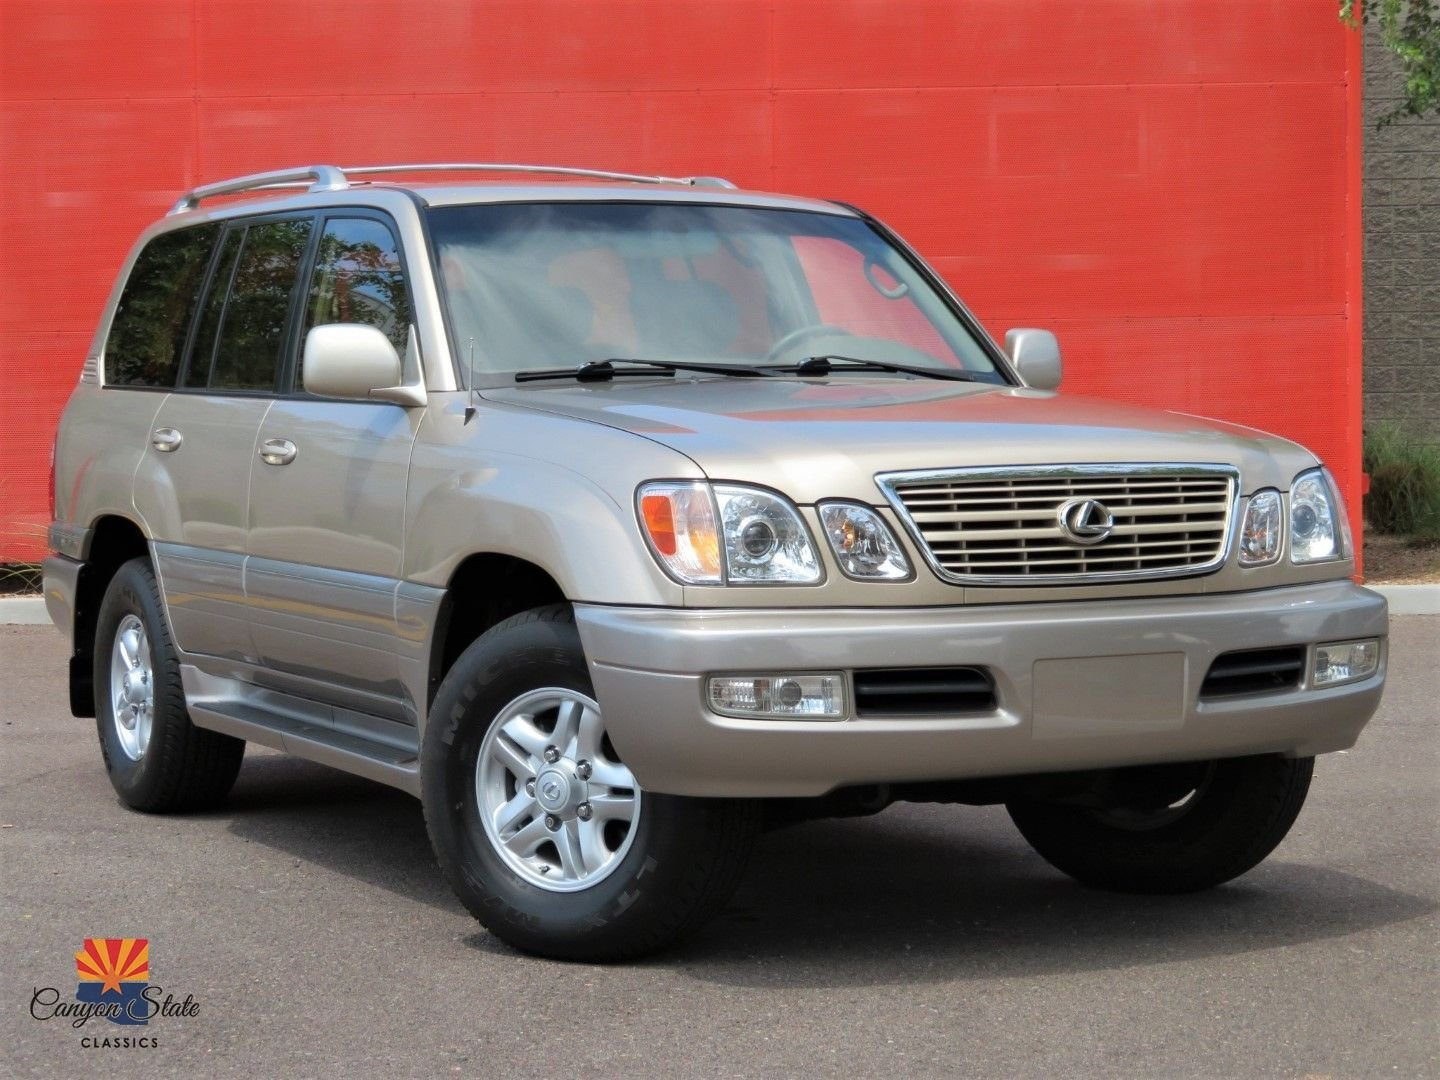 1999 lexus lx 470 luxury suv canyon state classics 1999 lexus lx 470 luxury suv canyon